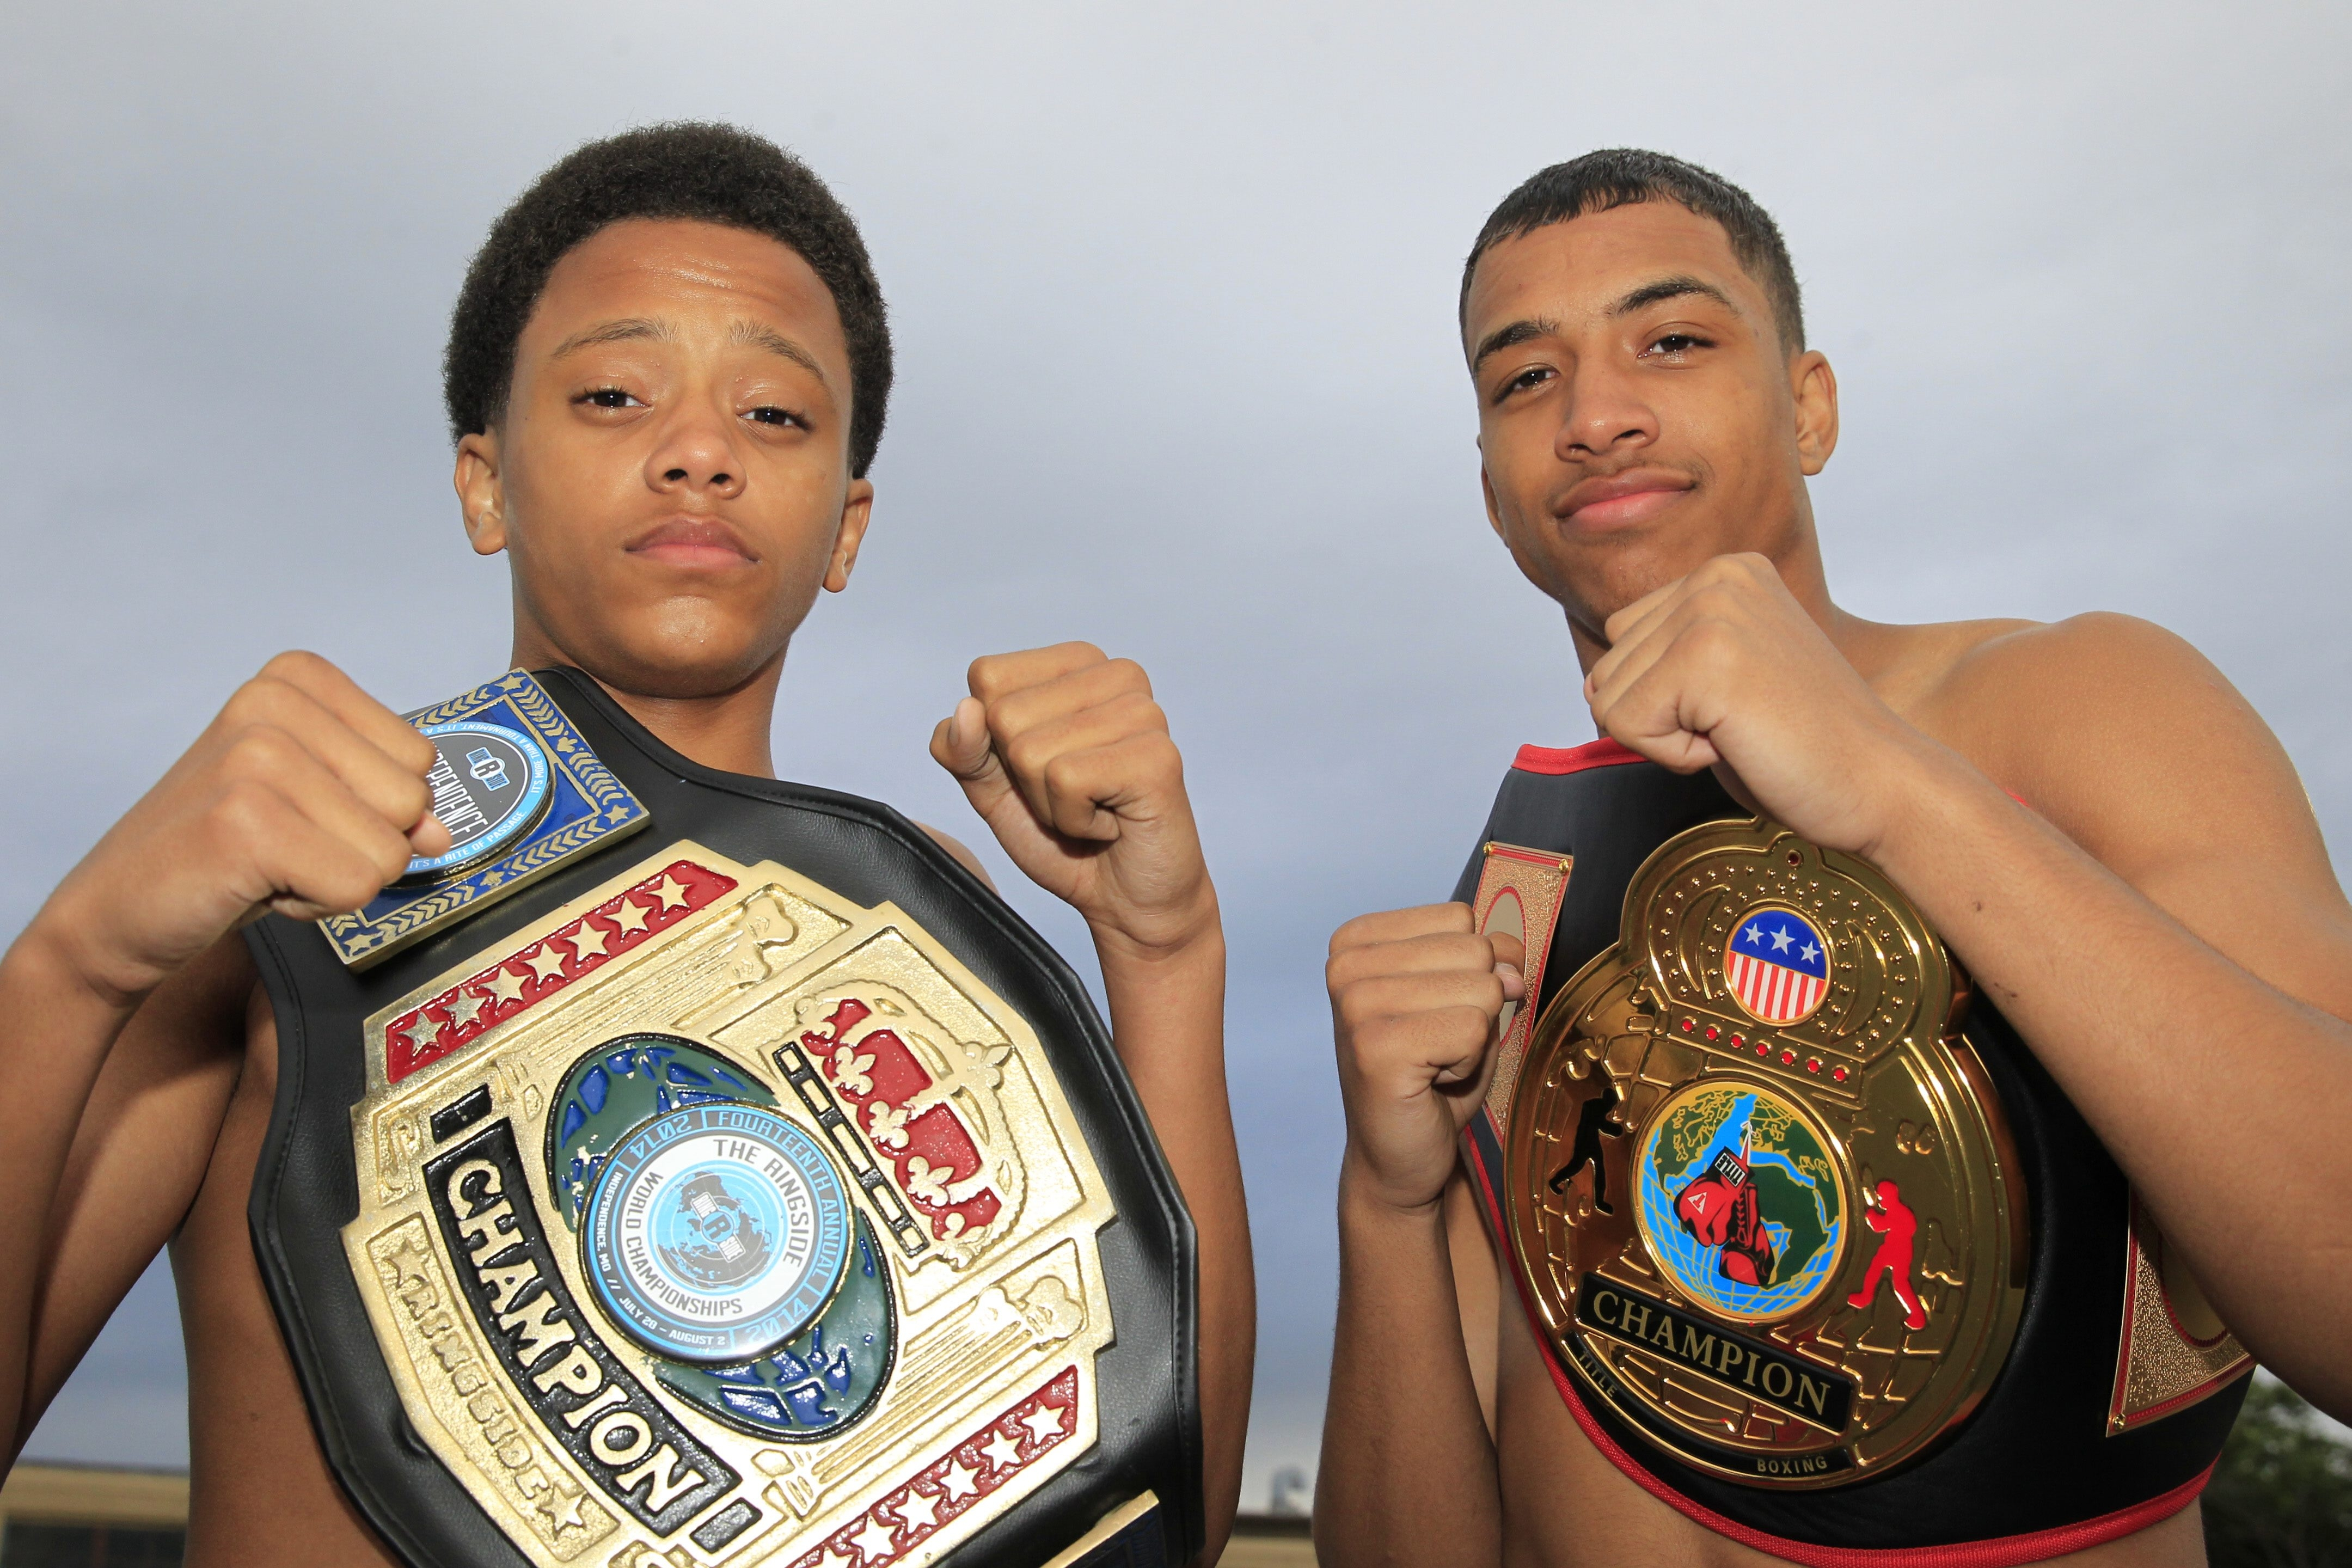 Destyn Hopkins, left, and his brother Trevon bus from Niagara Falls to Buffalo six times a week to train with their father.